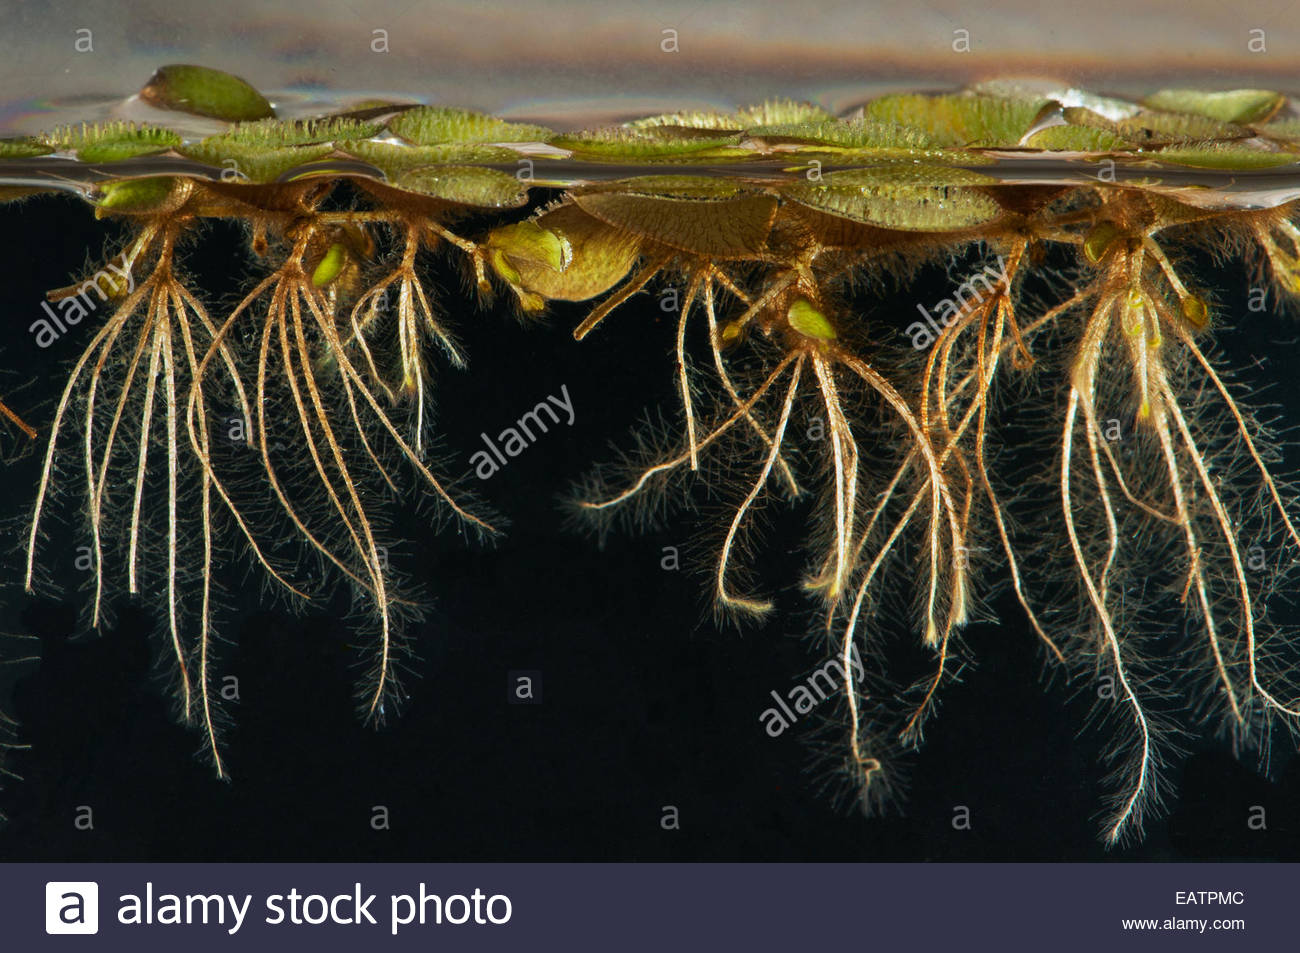 Lateral view of a floating fern, Salvinia species, with roots in water. - Stock Image